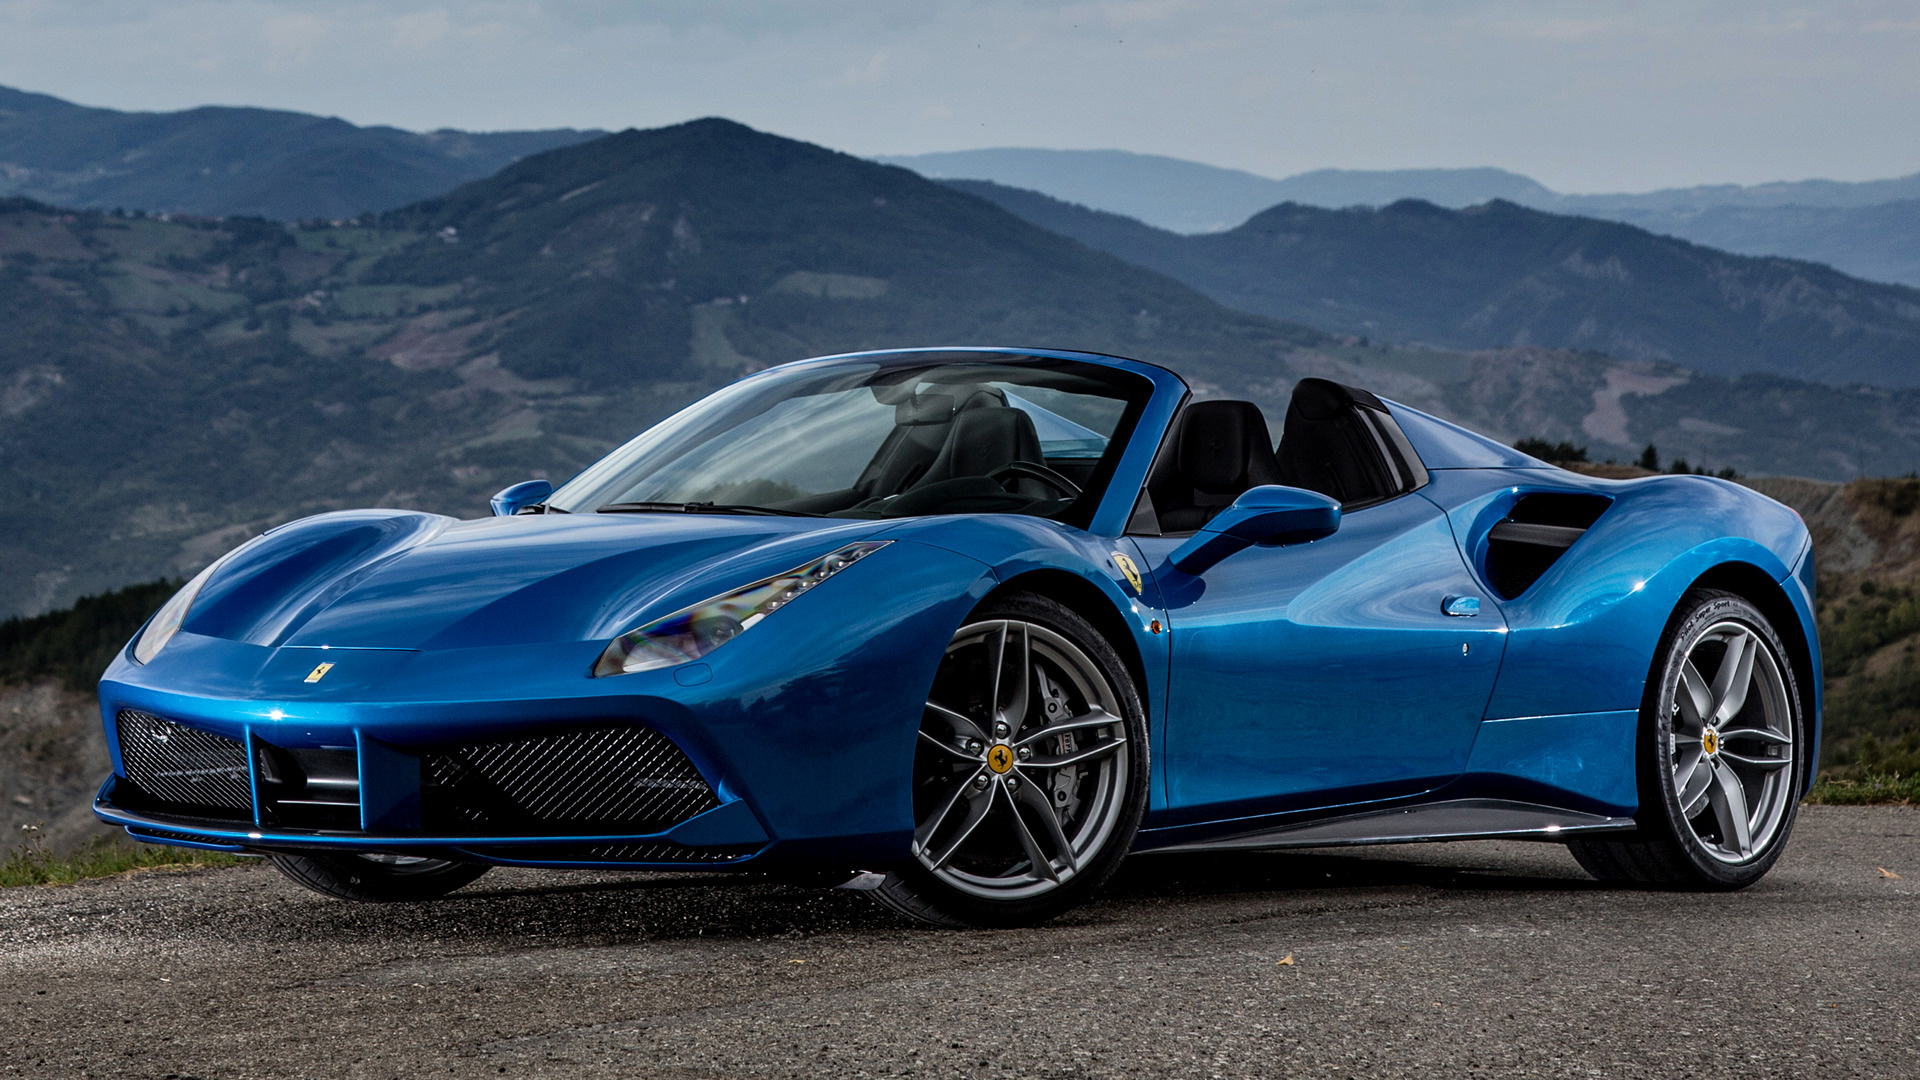 Ferrari 488 Spider >> 2015 Ferrari 488 Spider - Wallpapers and HD Images | Car Pixel